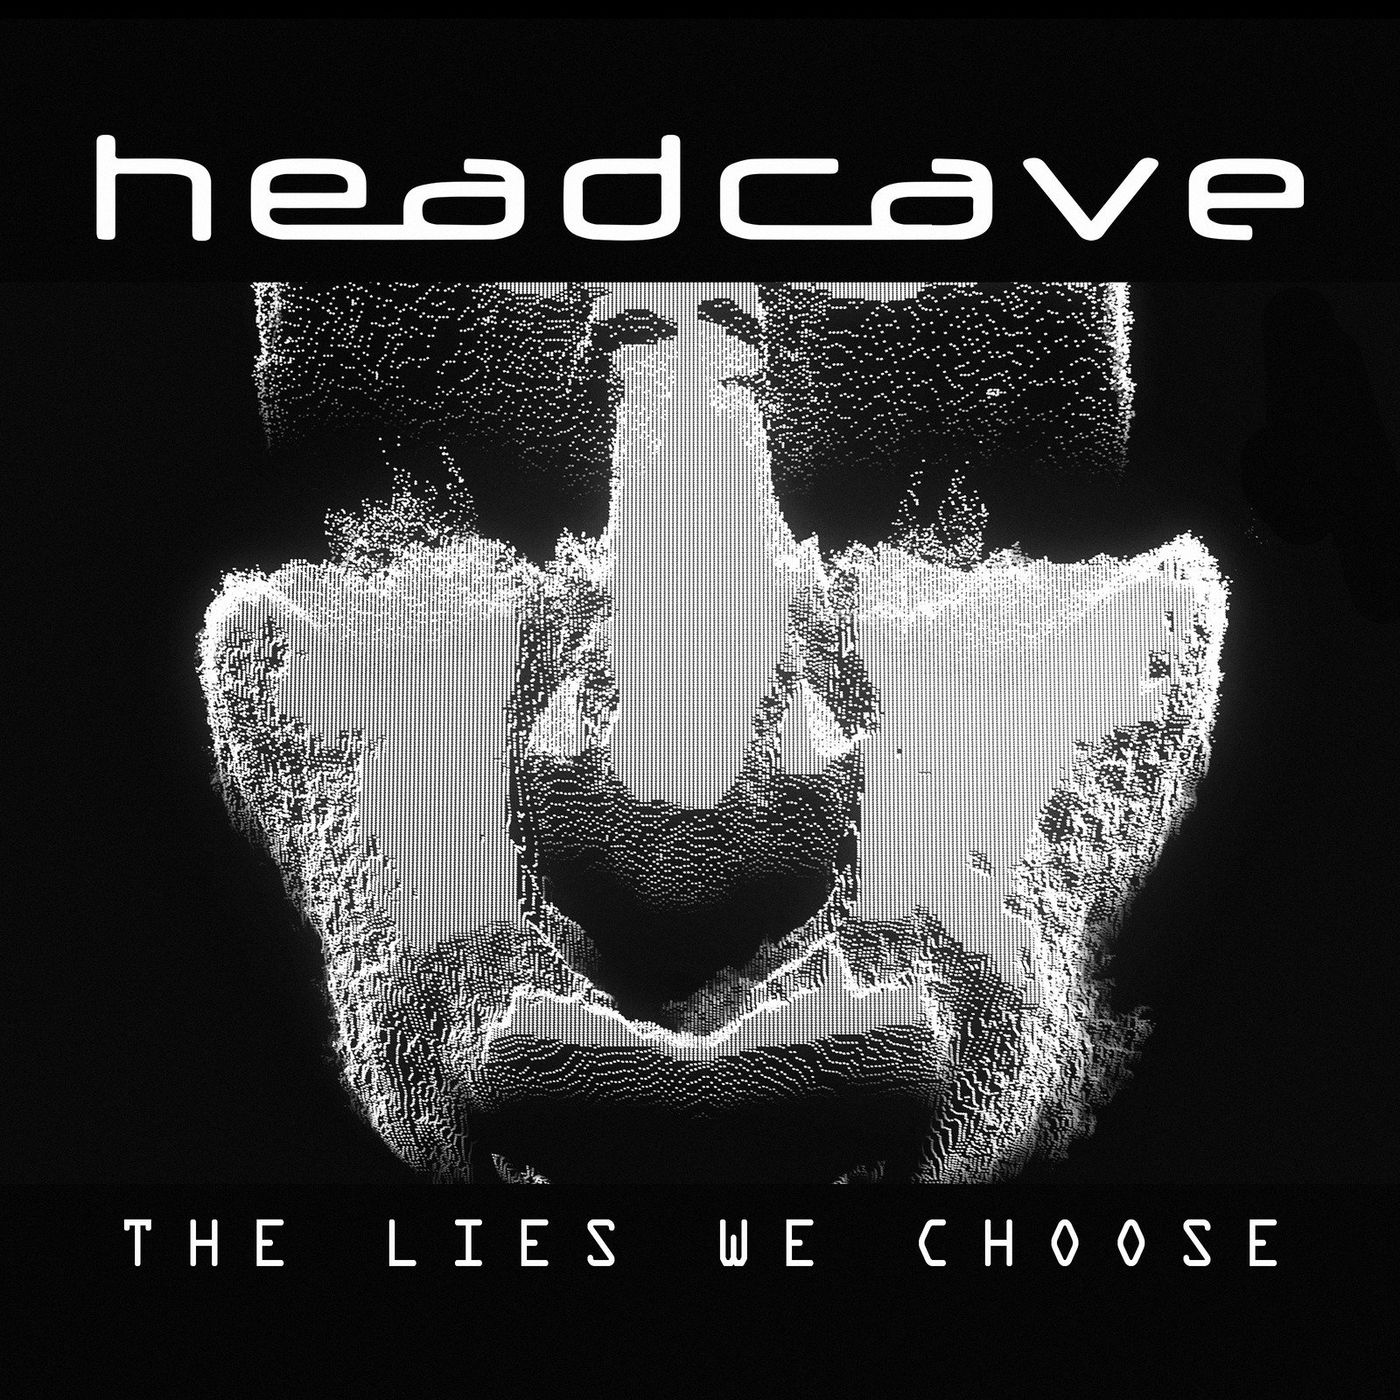 headcave - The Lies We Choose [single] (2021)